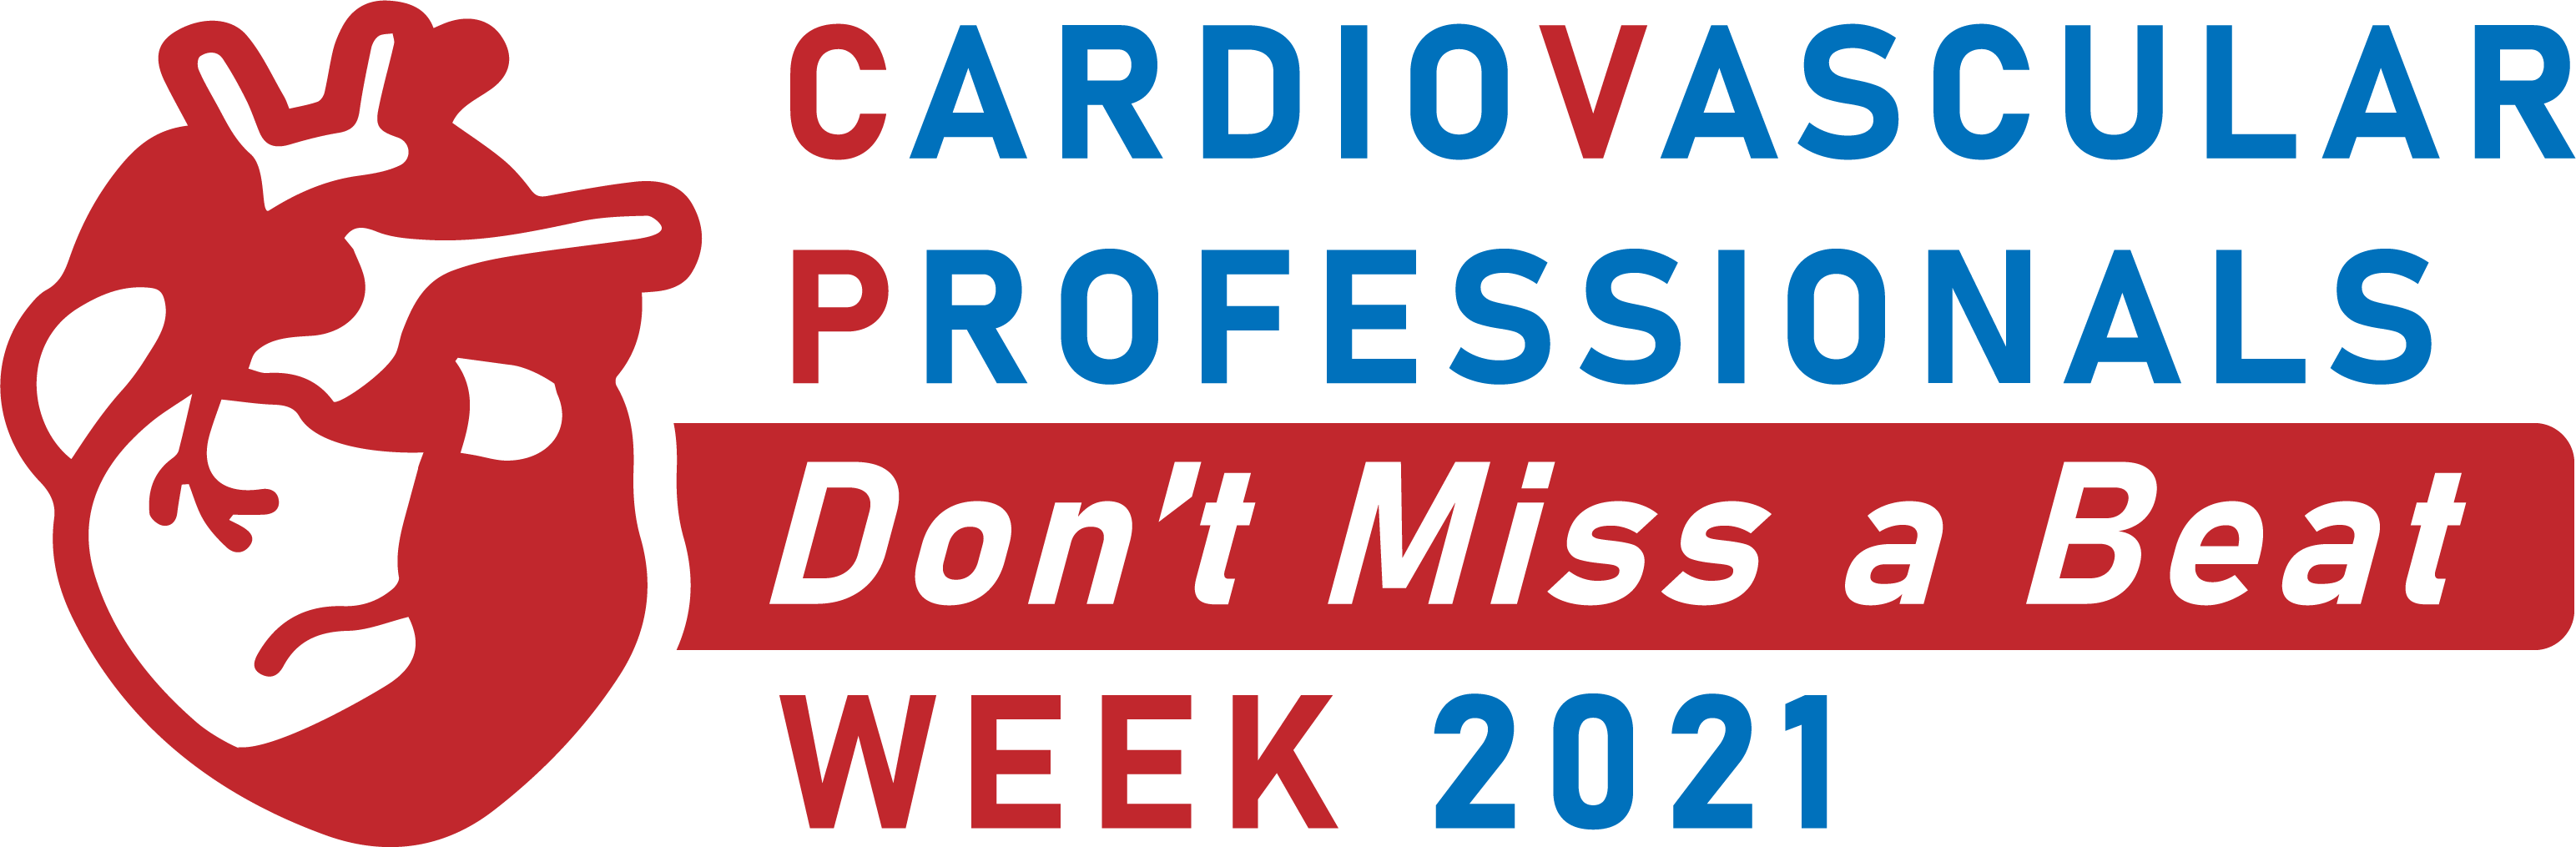 Official CVP Week 2021 Logo: Cardiovascular Professionals Don't Miss a Beat